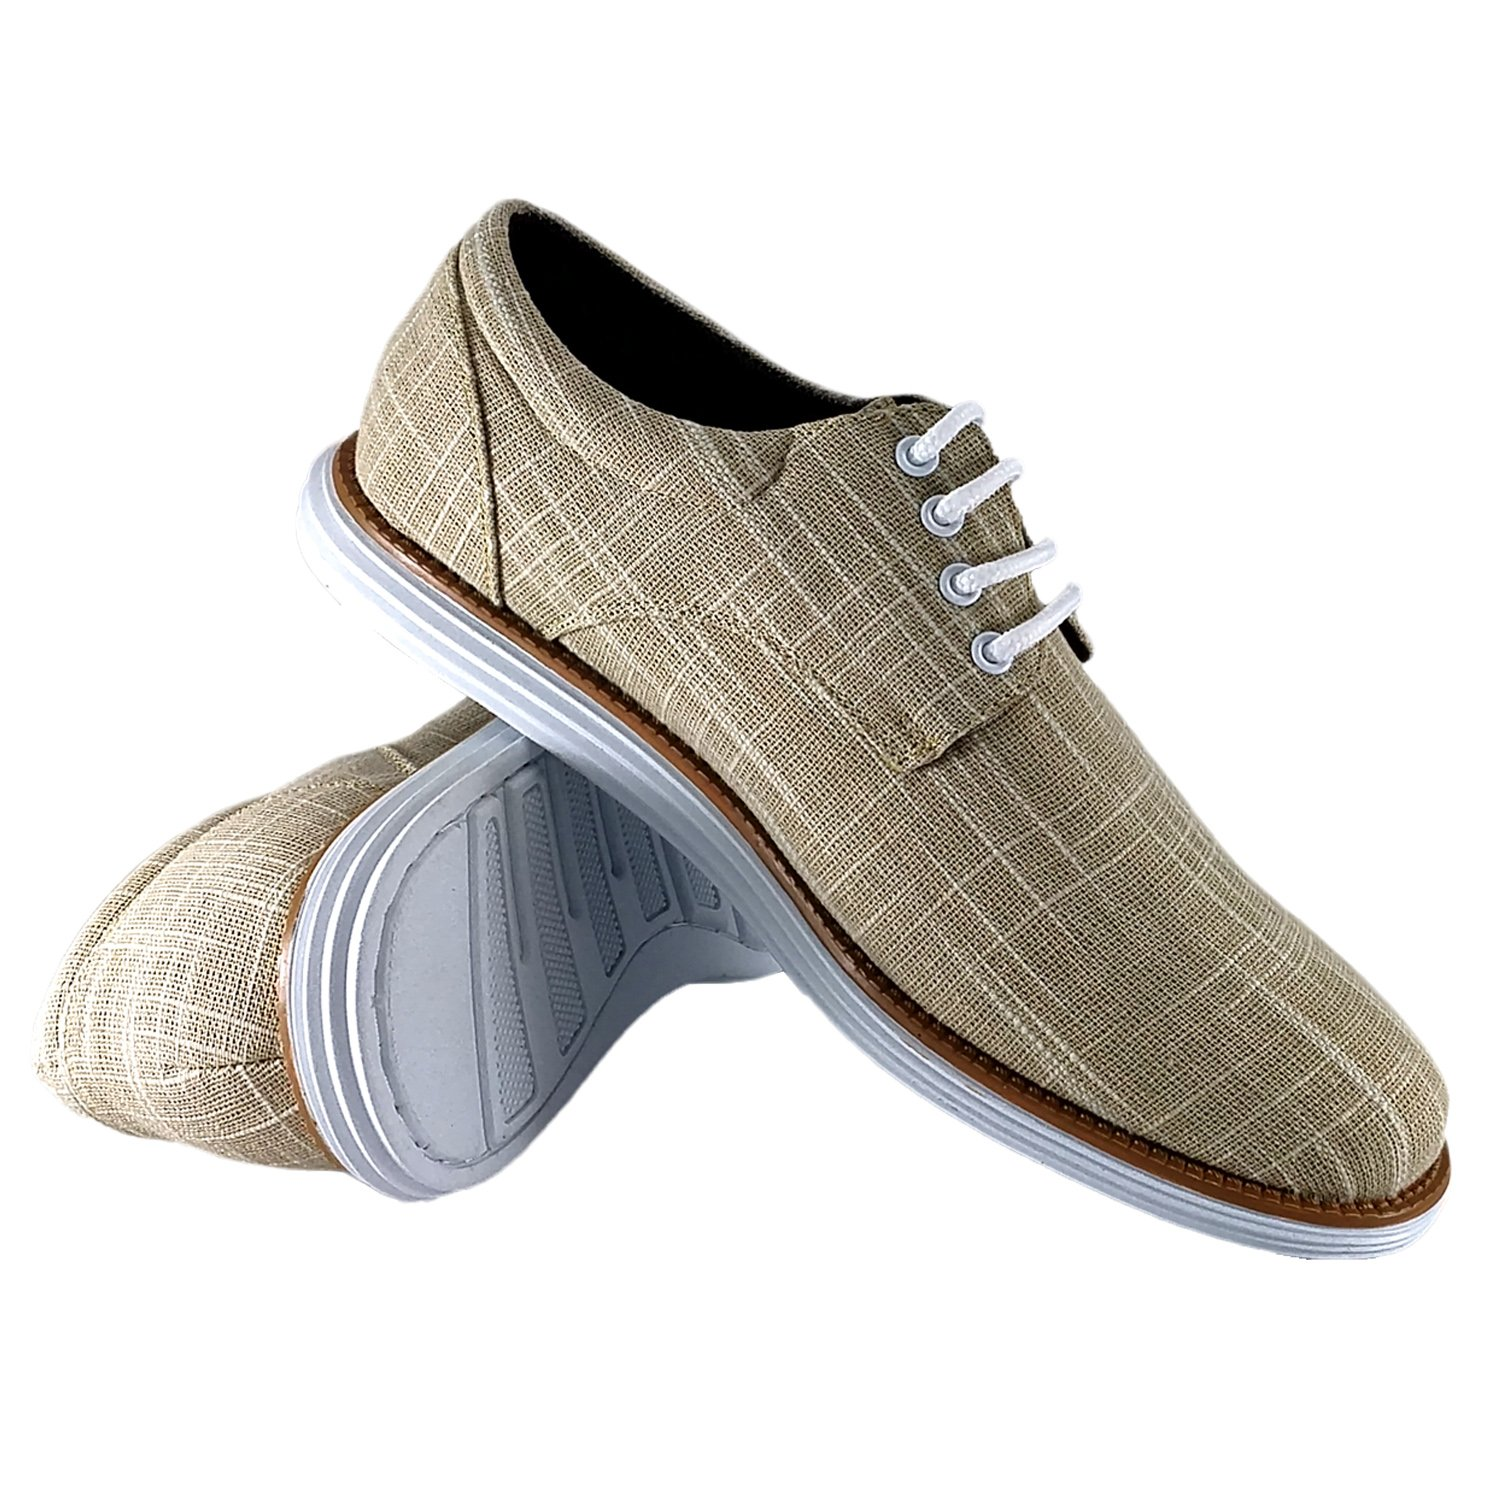 reverse Men's Oxford Dress Comfort Everyday Walking Lace-up Shoe, Beige 9 D(M) US